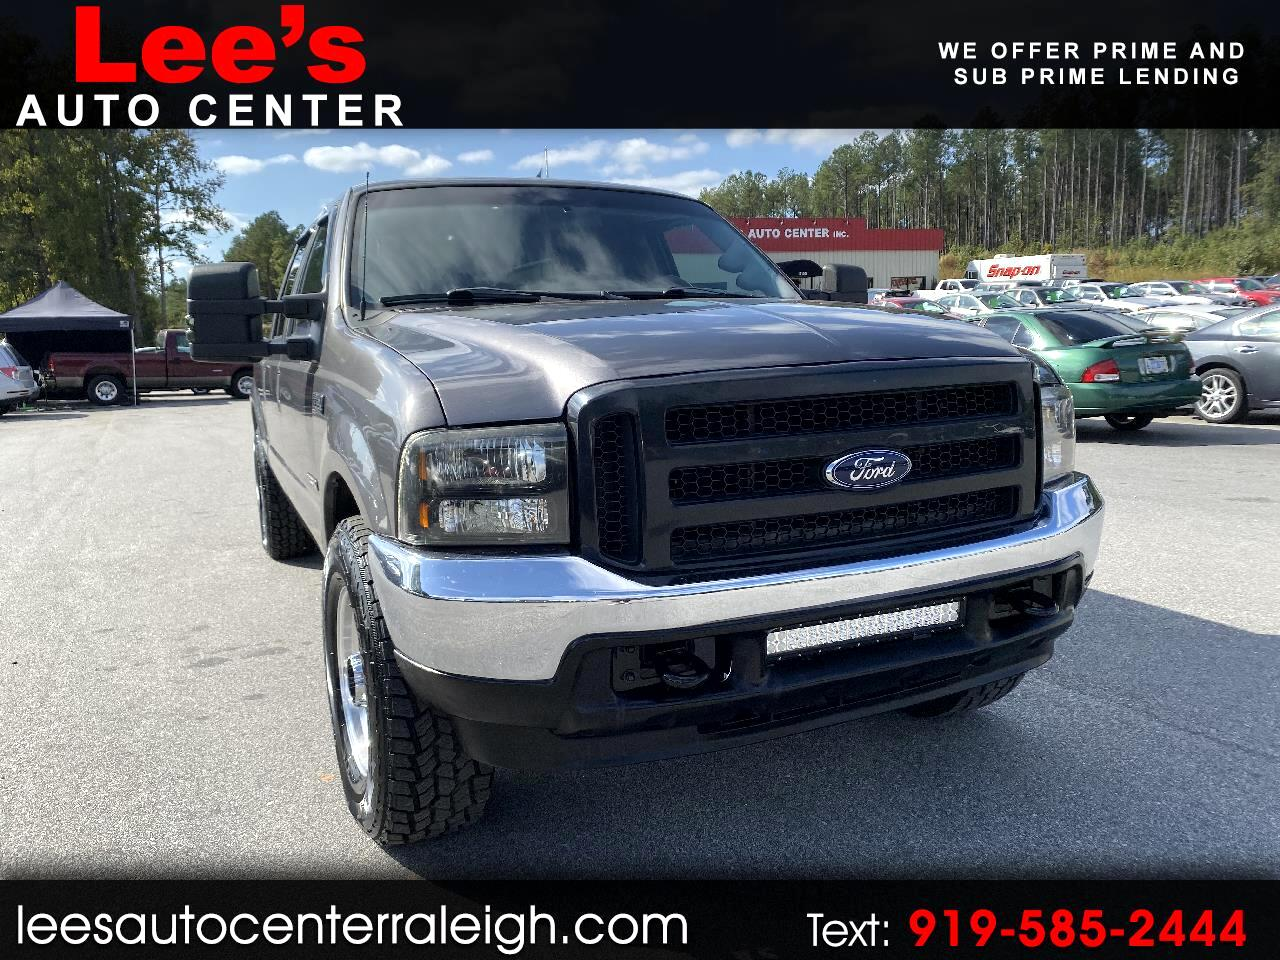 2004 Ford Super Duty F-250 4WD LARIAT, BULLETPROOFED, BANKS INTAKE SYSTEM